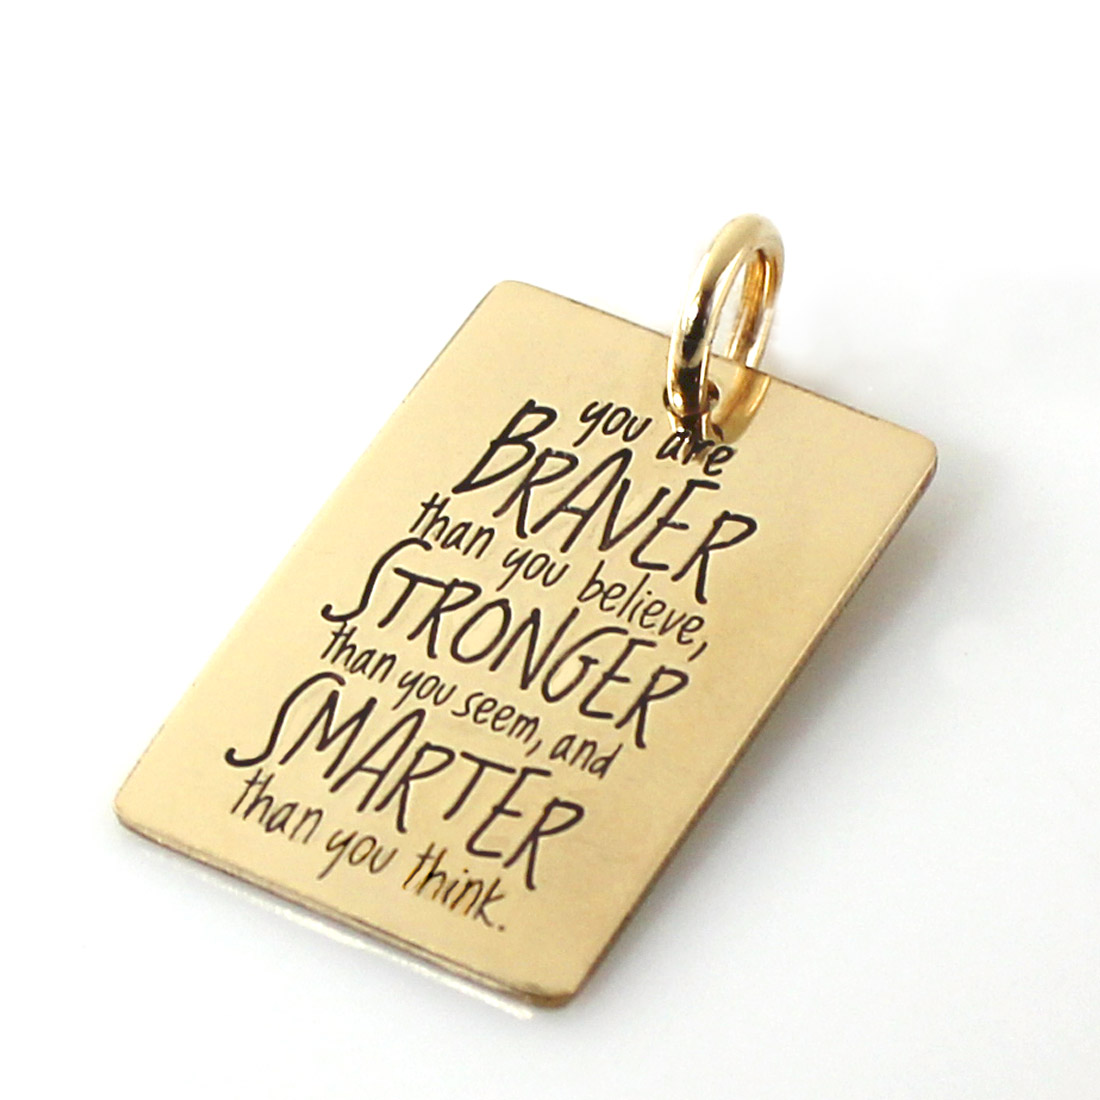 Add a 'You are Braver' Charm | Gold-Filled